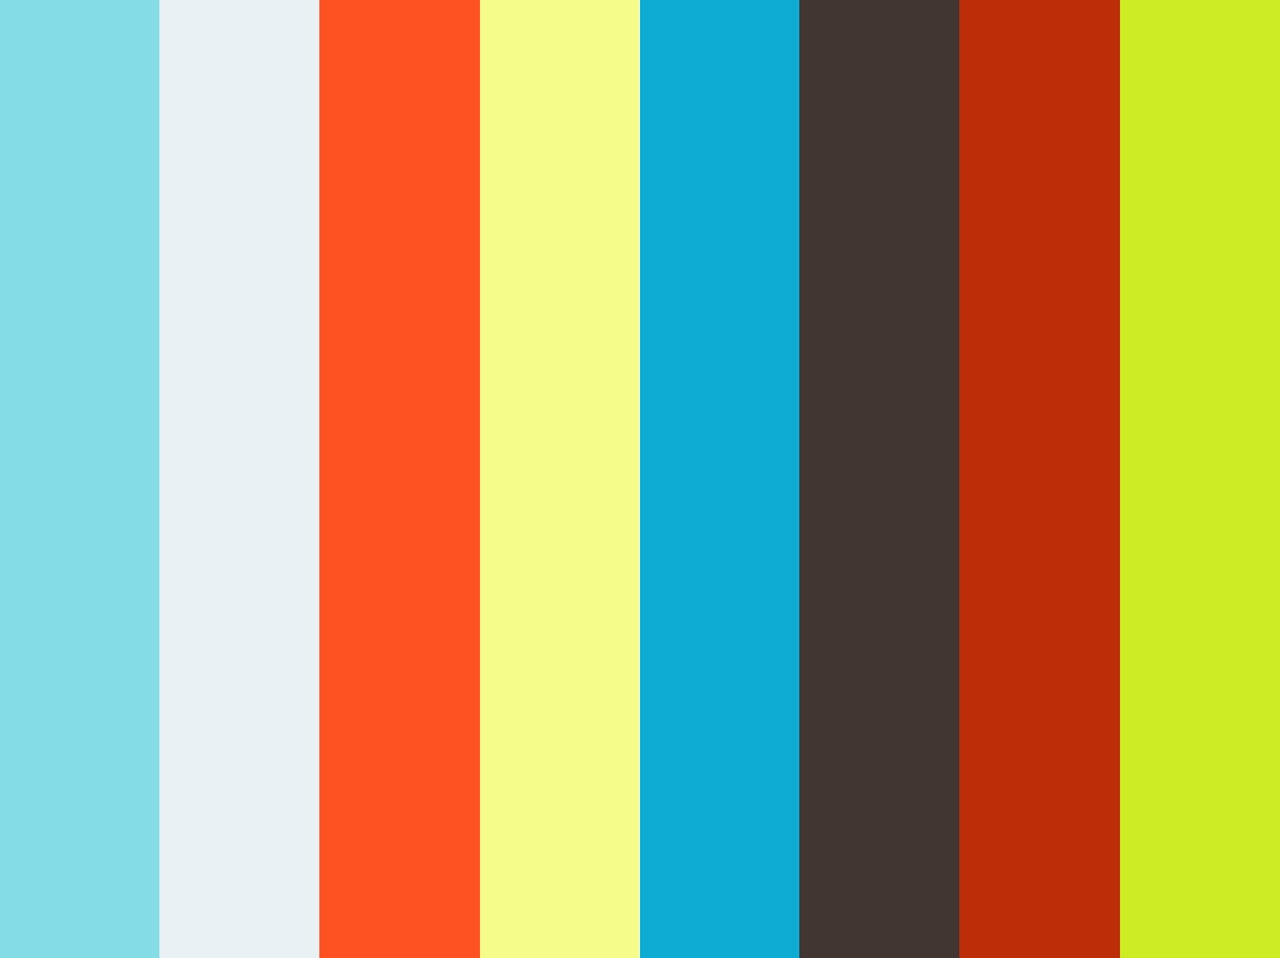 flight attendant interviews do s and don ts on vimeo